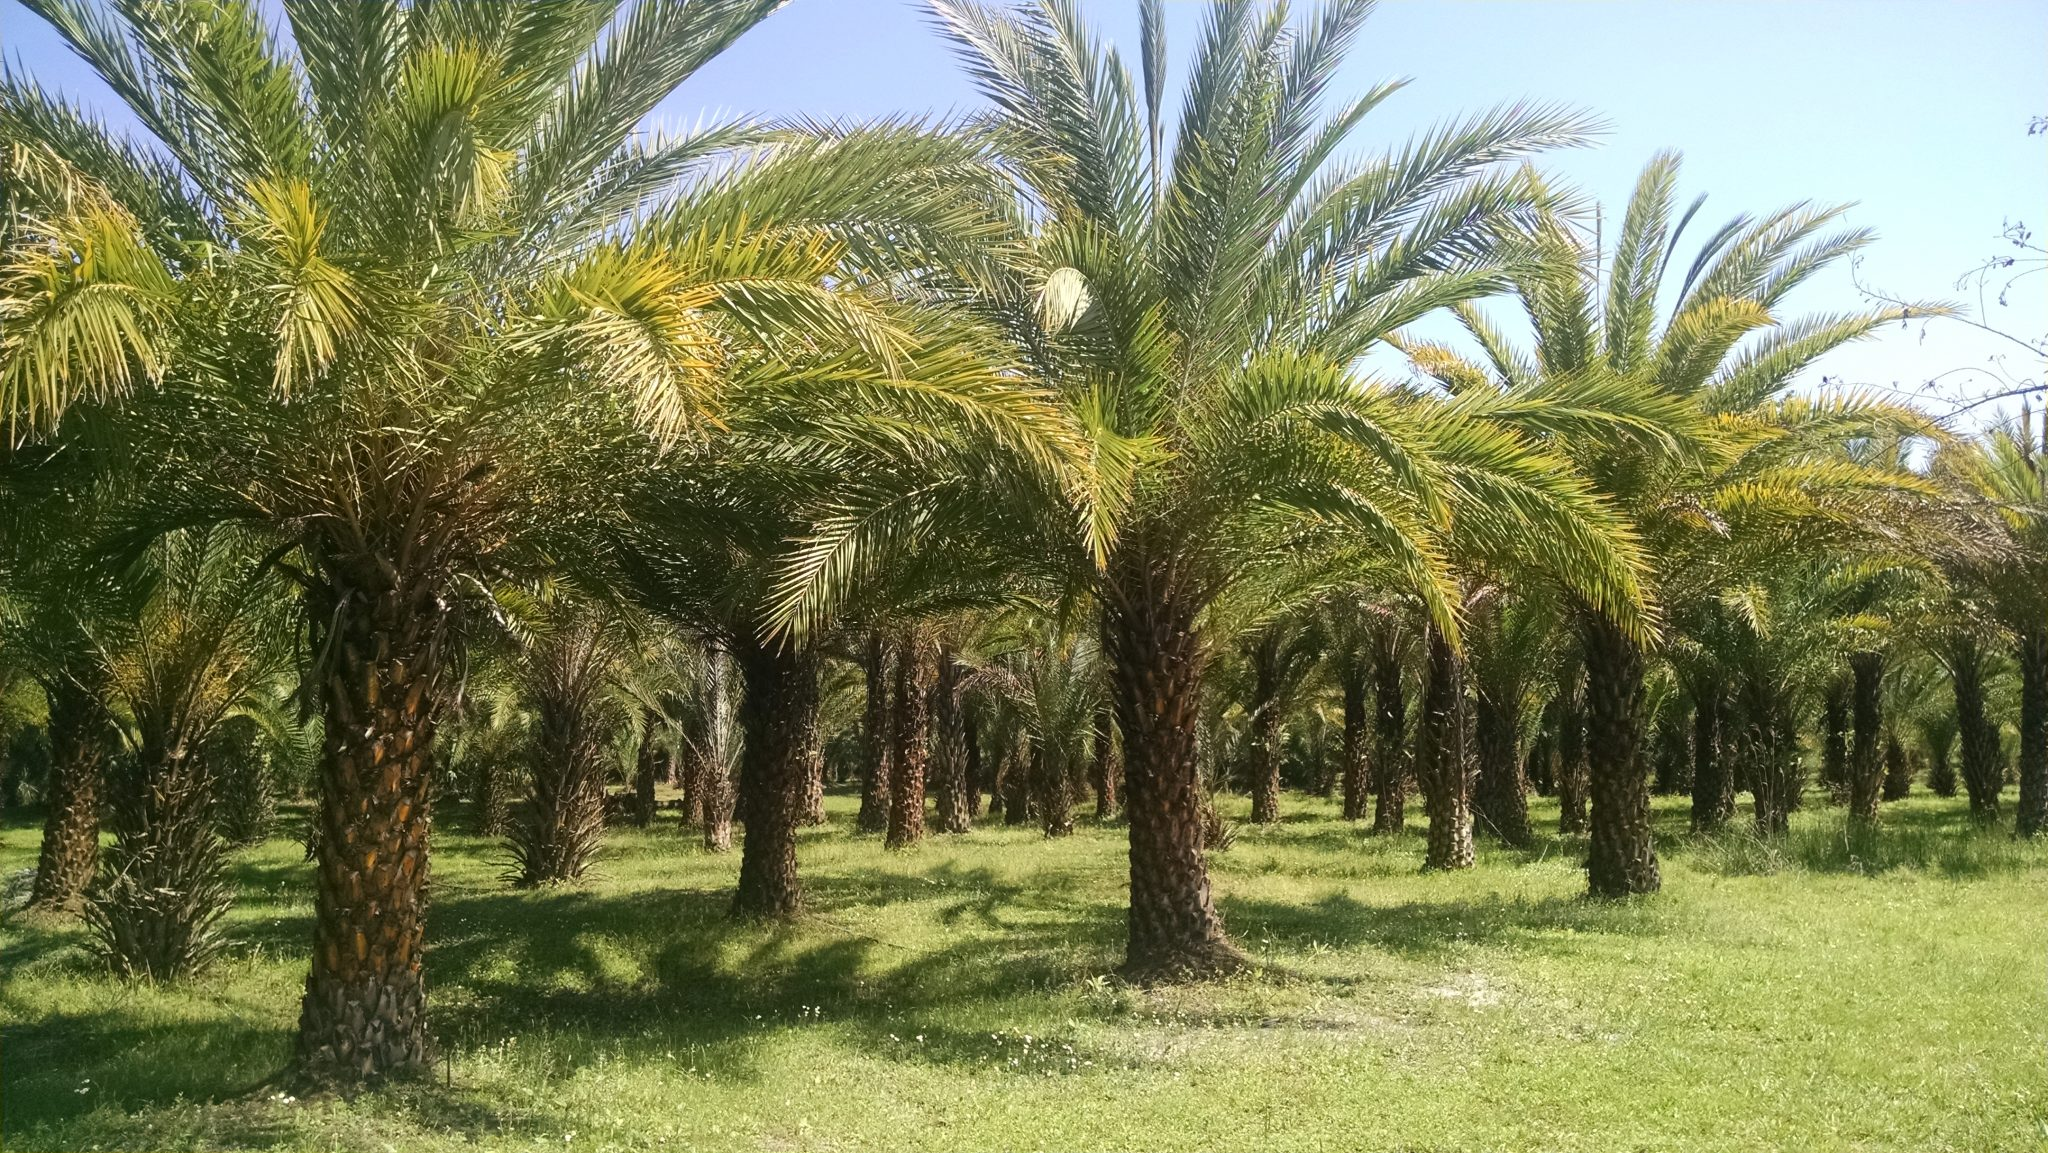 sylvester palm tree hardy palm tree farm